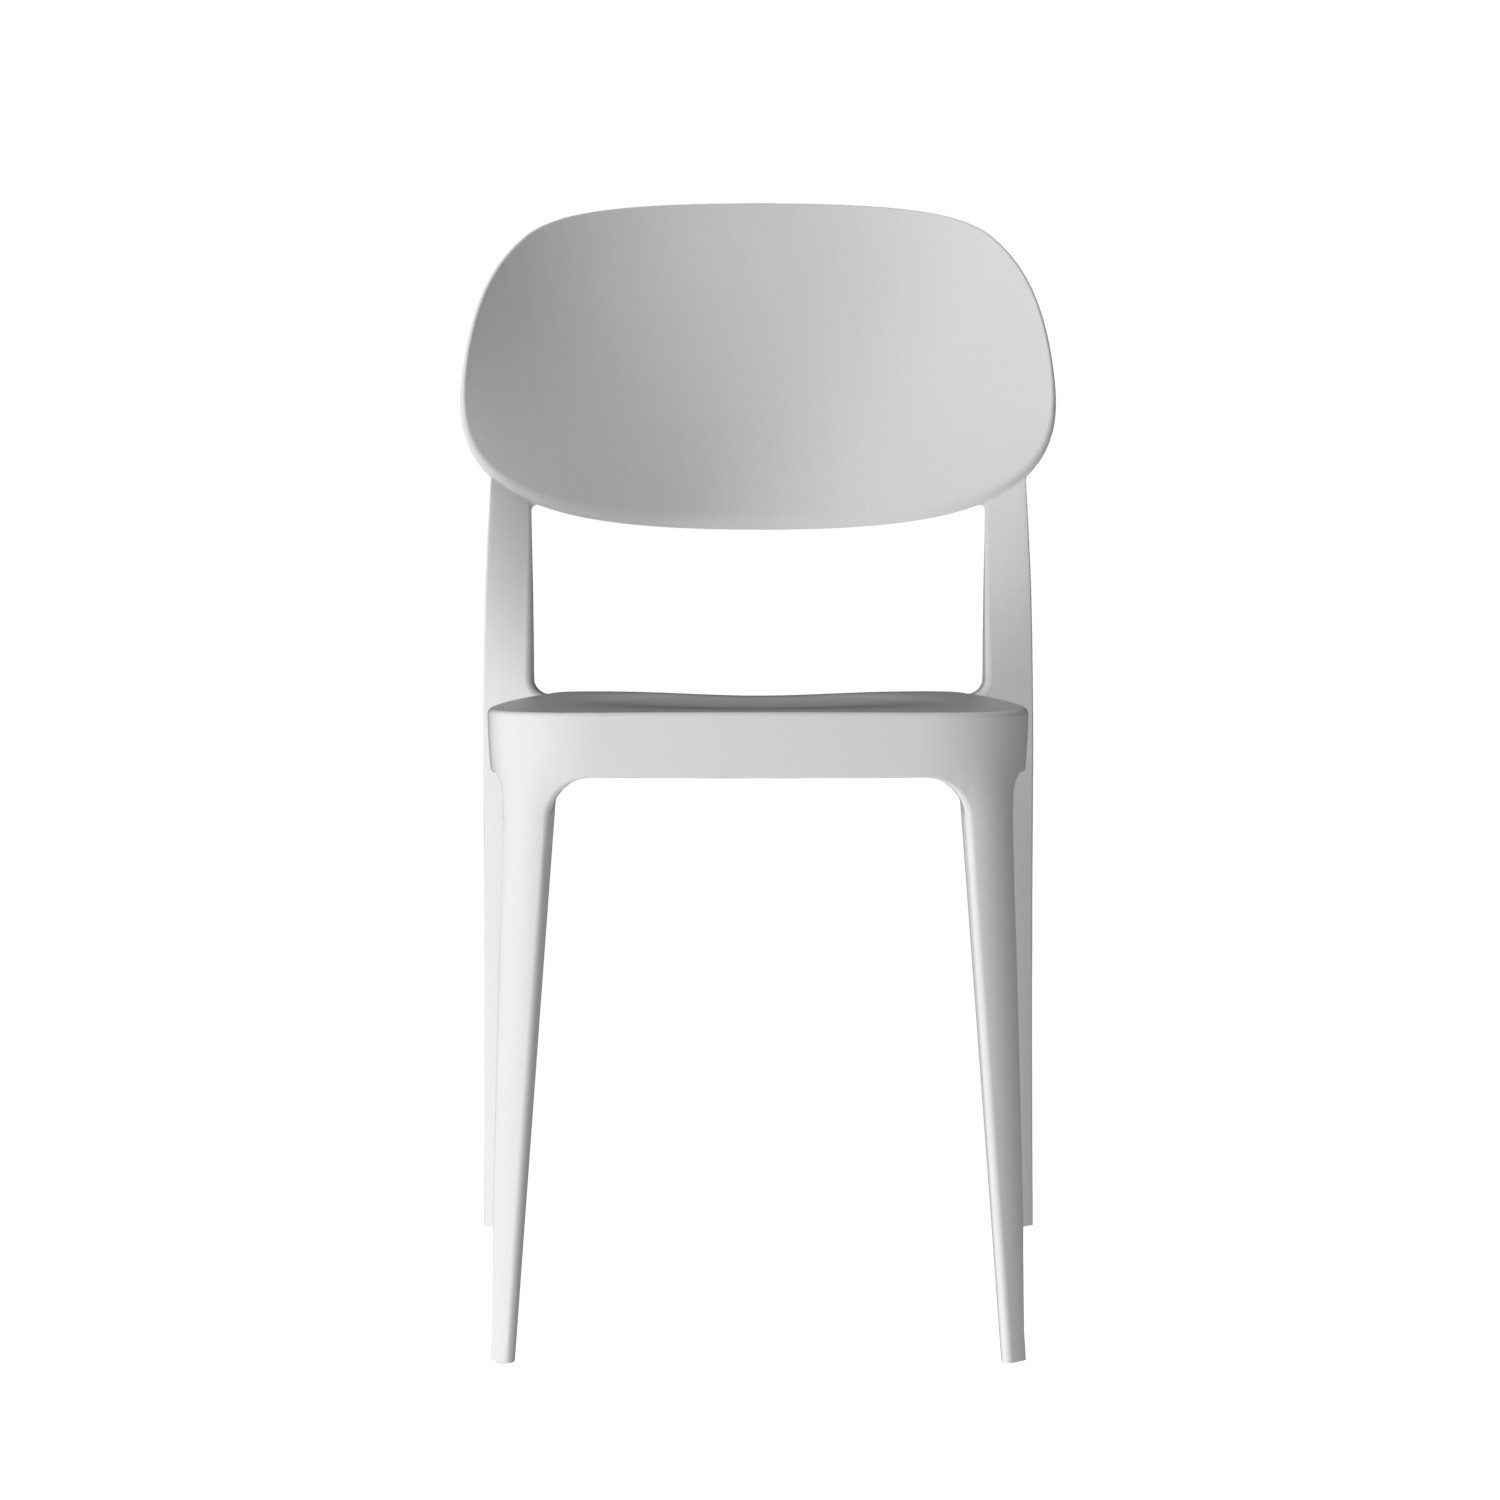 Amy Chair by Valerio Sommella